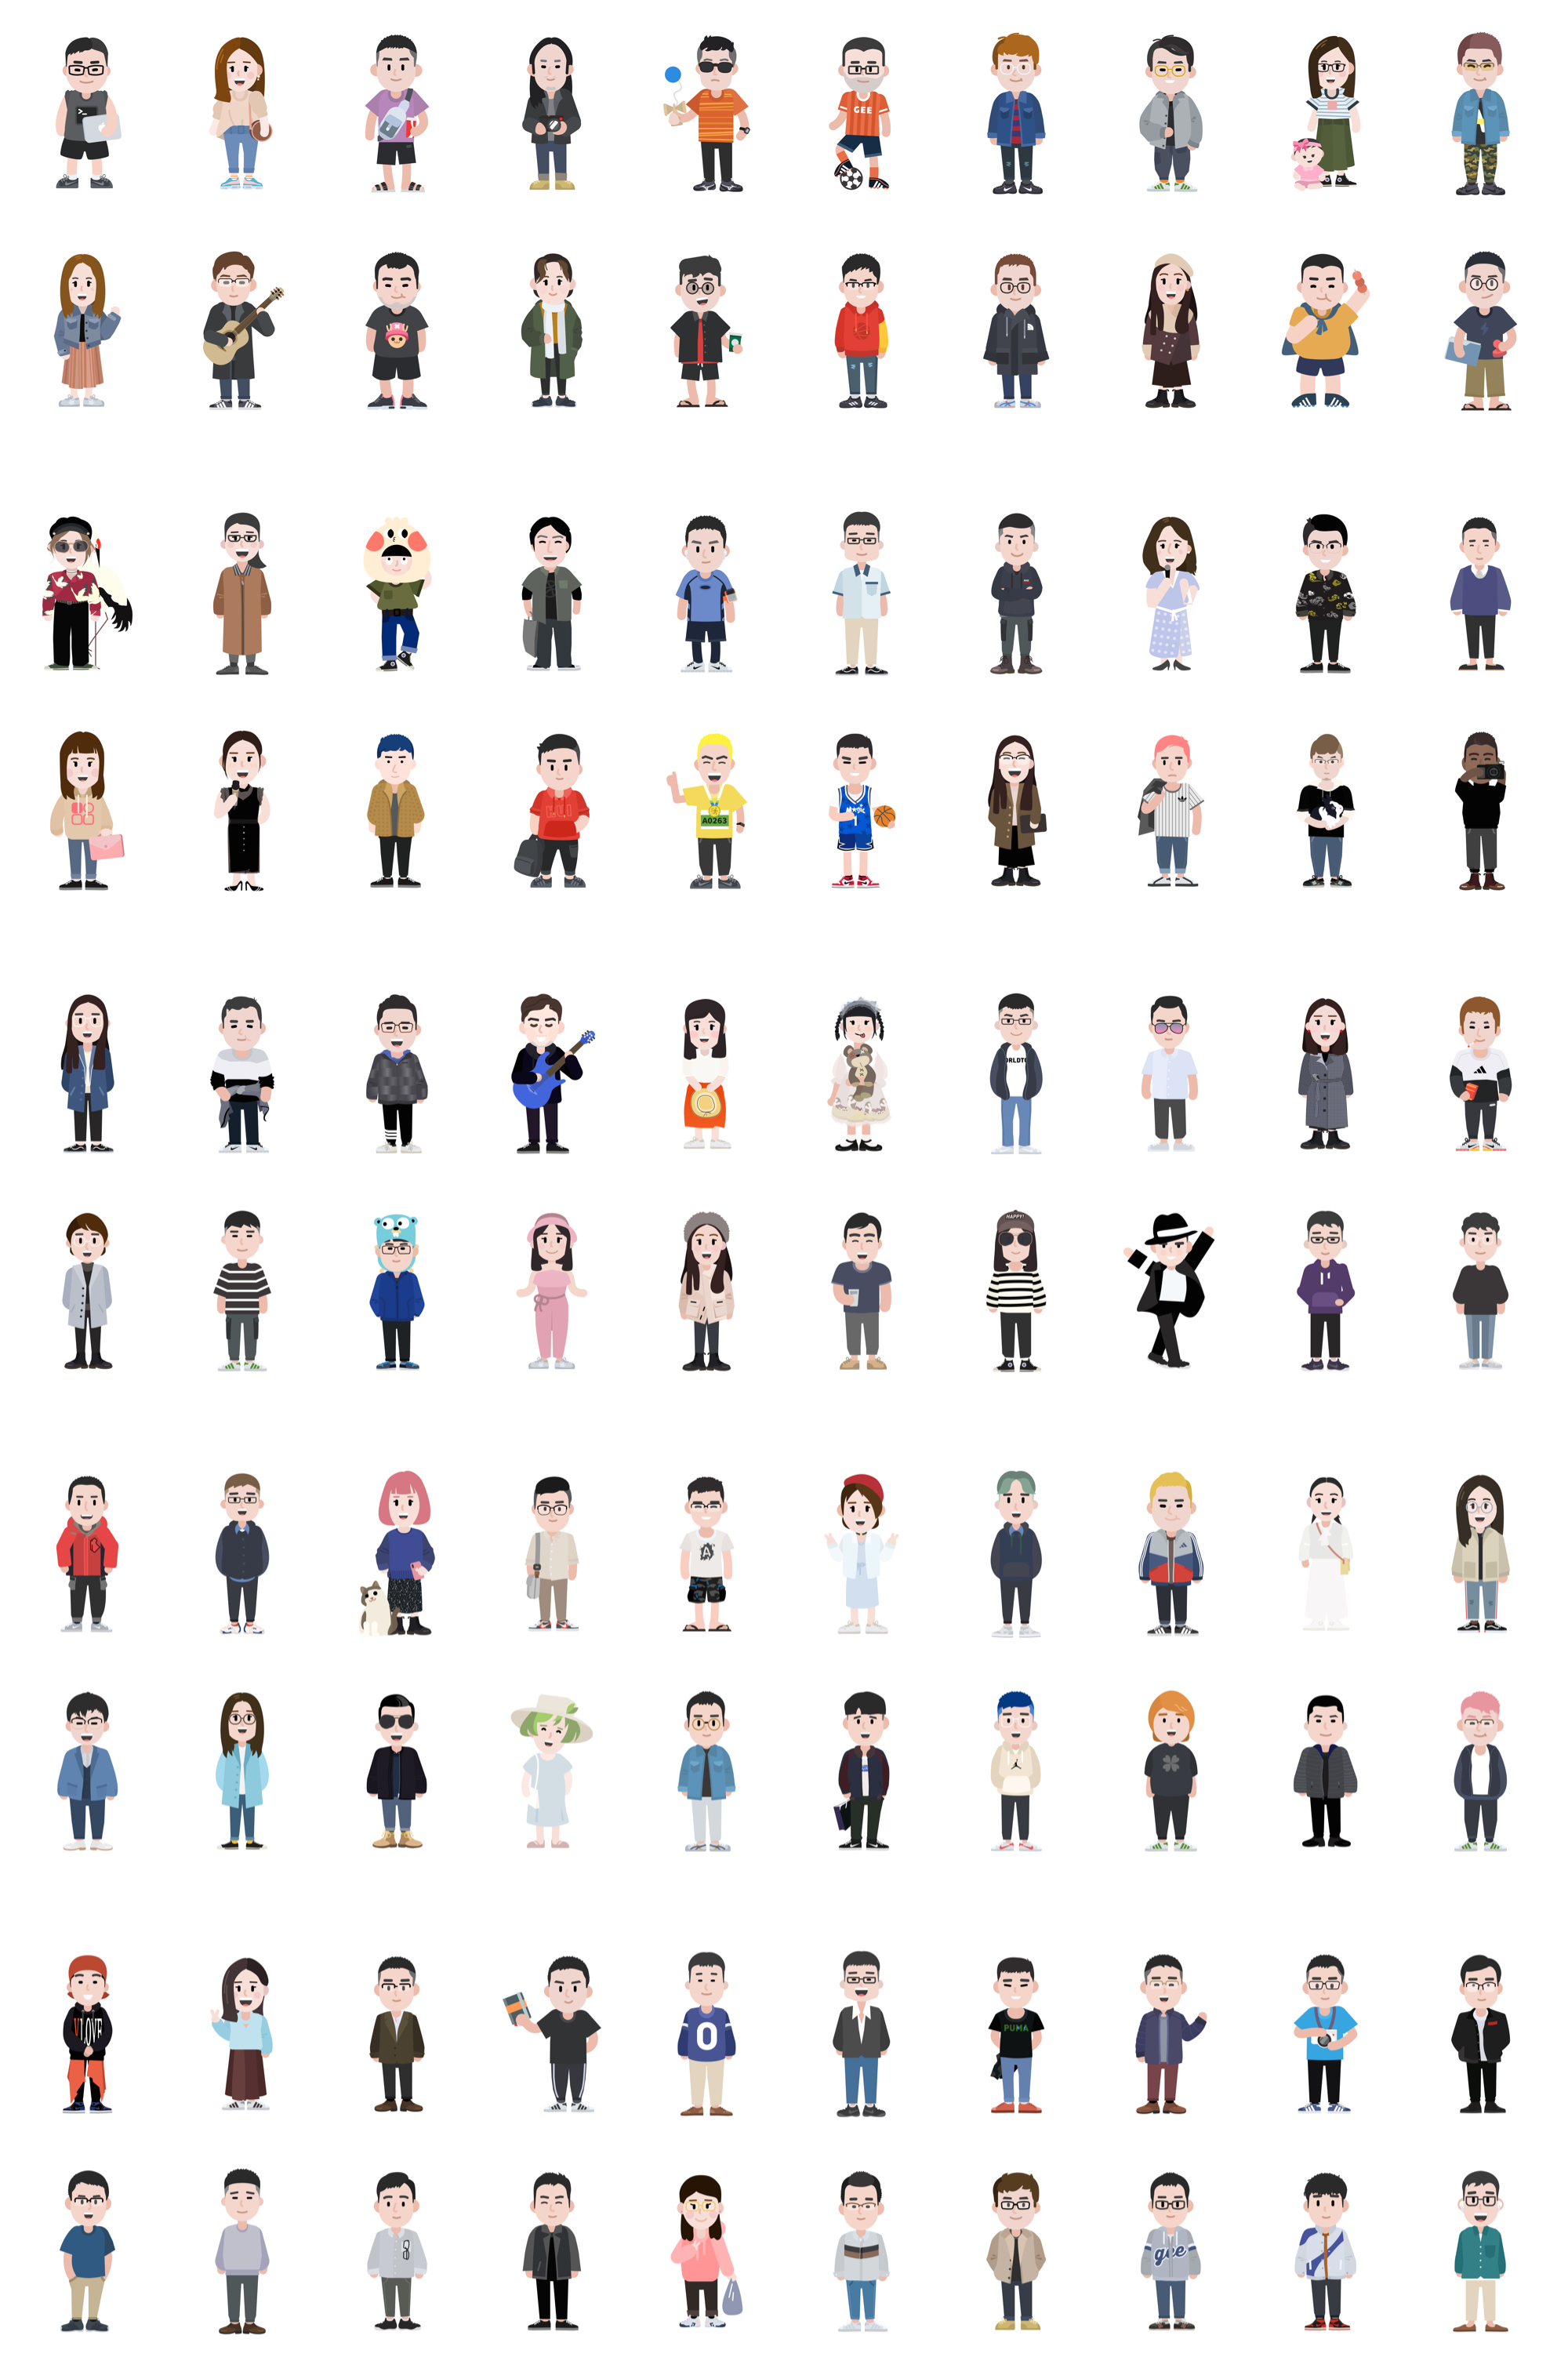 GEE! ME - 100 Illustration Characters - GEE! ME is a great set of flat graphics required, 100 cartoon characters and over 400 coolest objects. You can use it in any design or development projects. It's completely free and just enjoy it